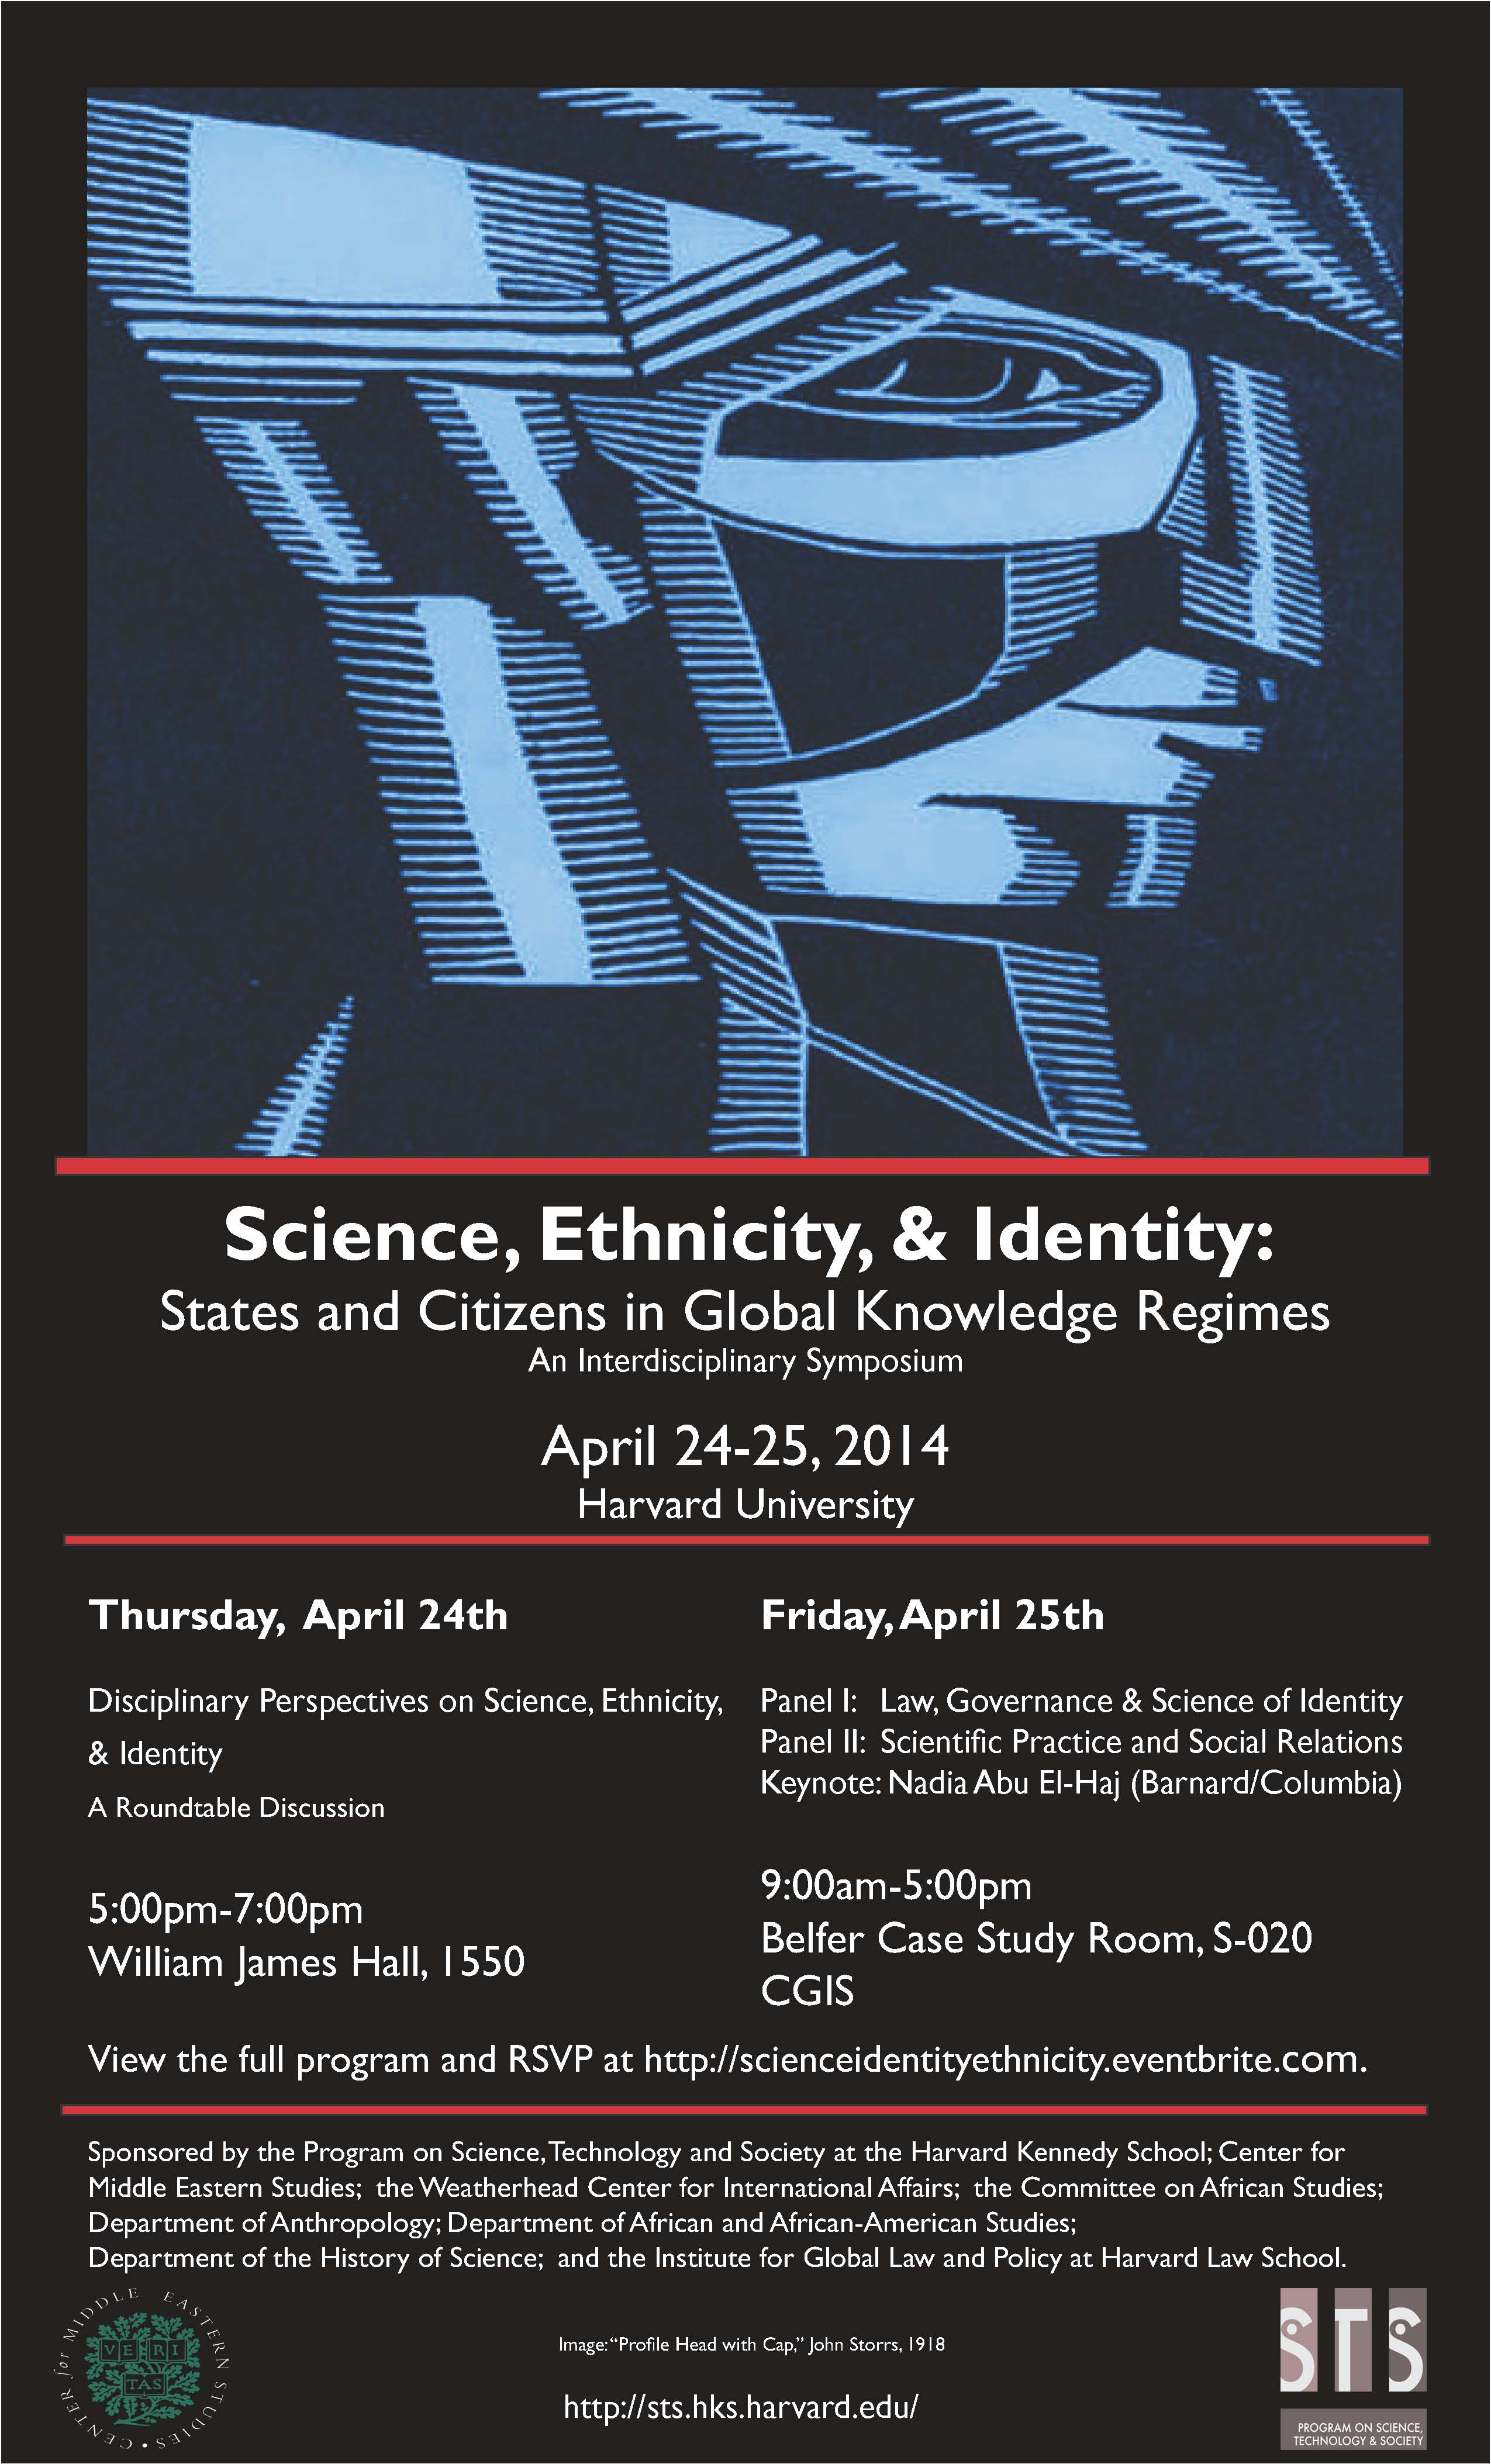 Science, Ethnicity, and Identity event poster